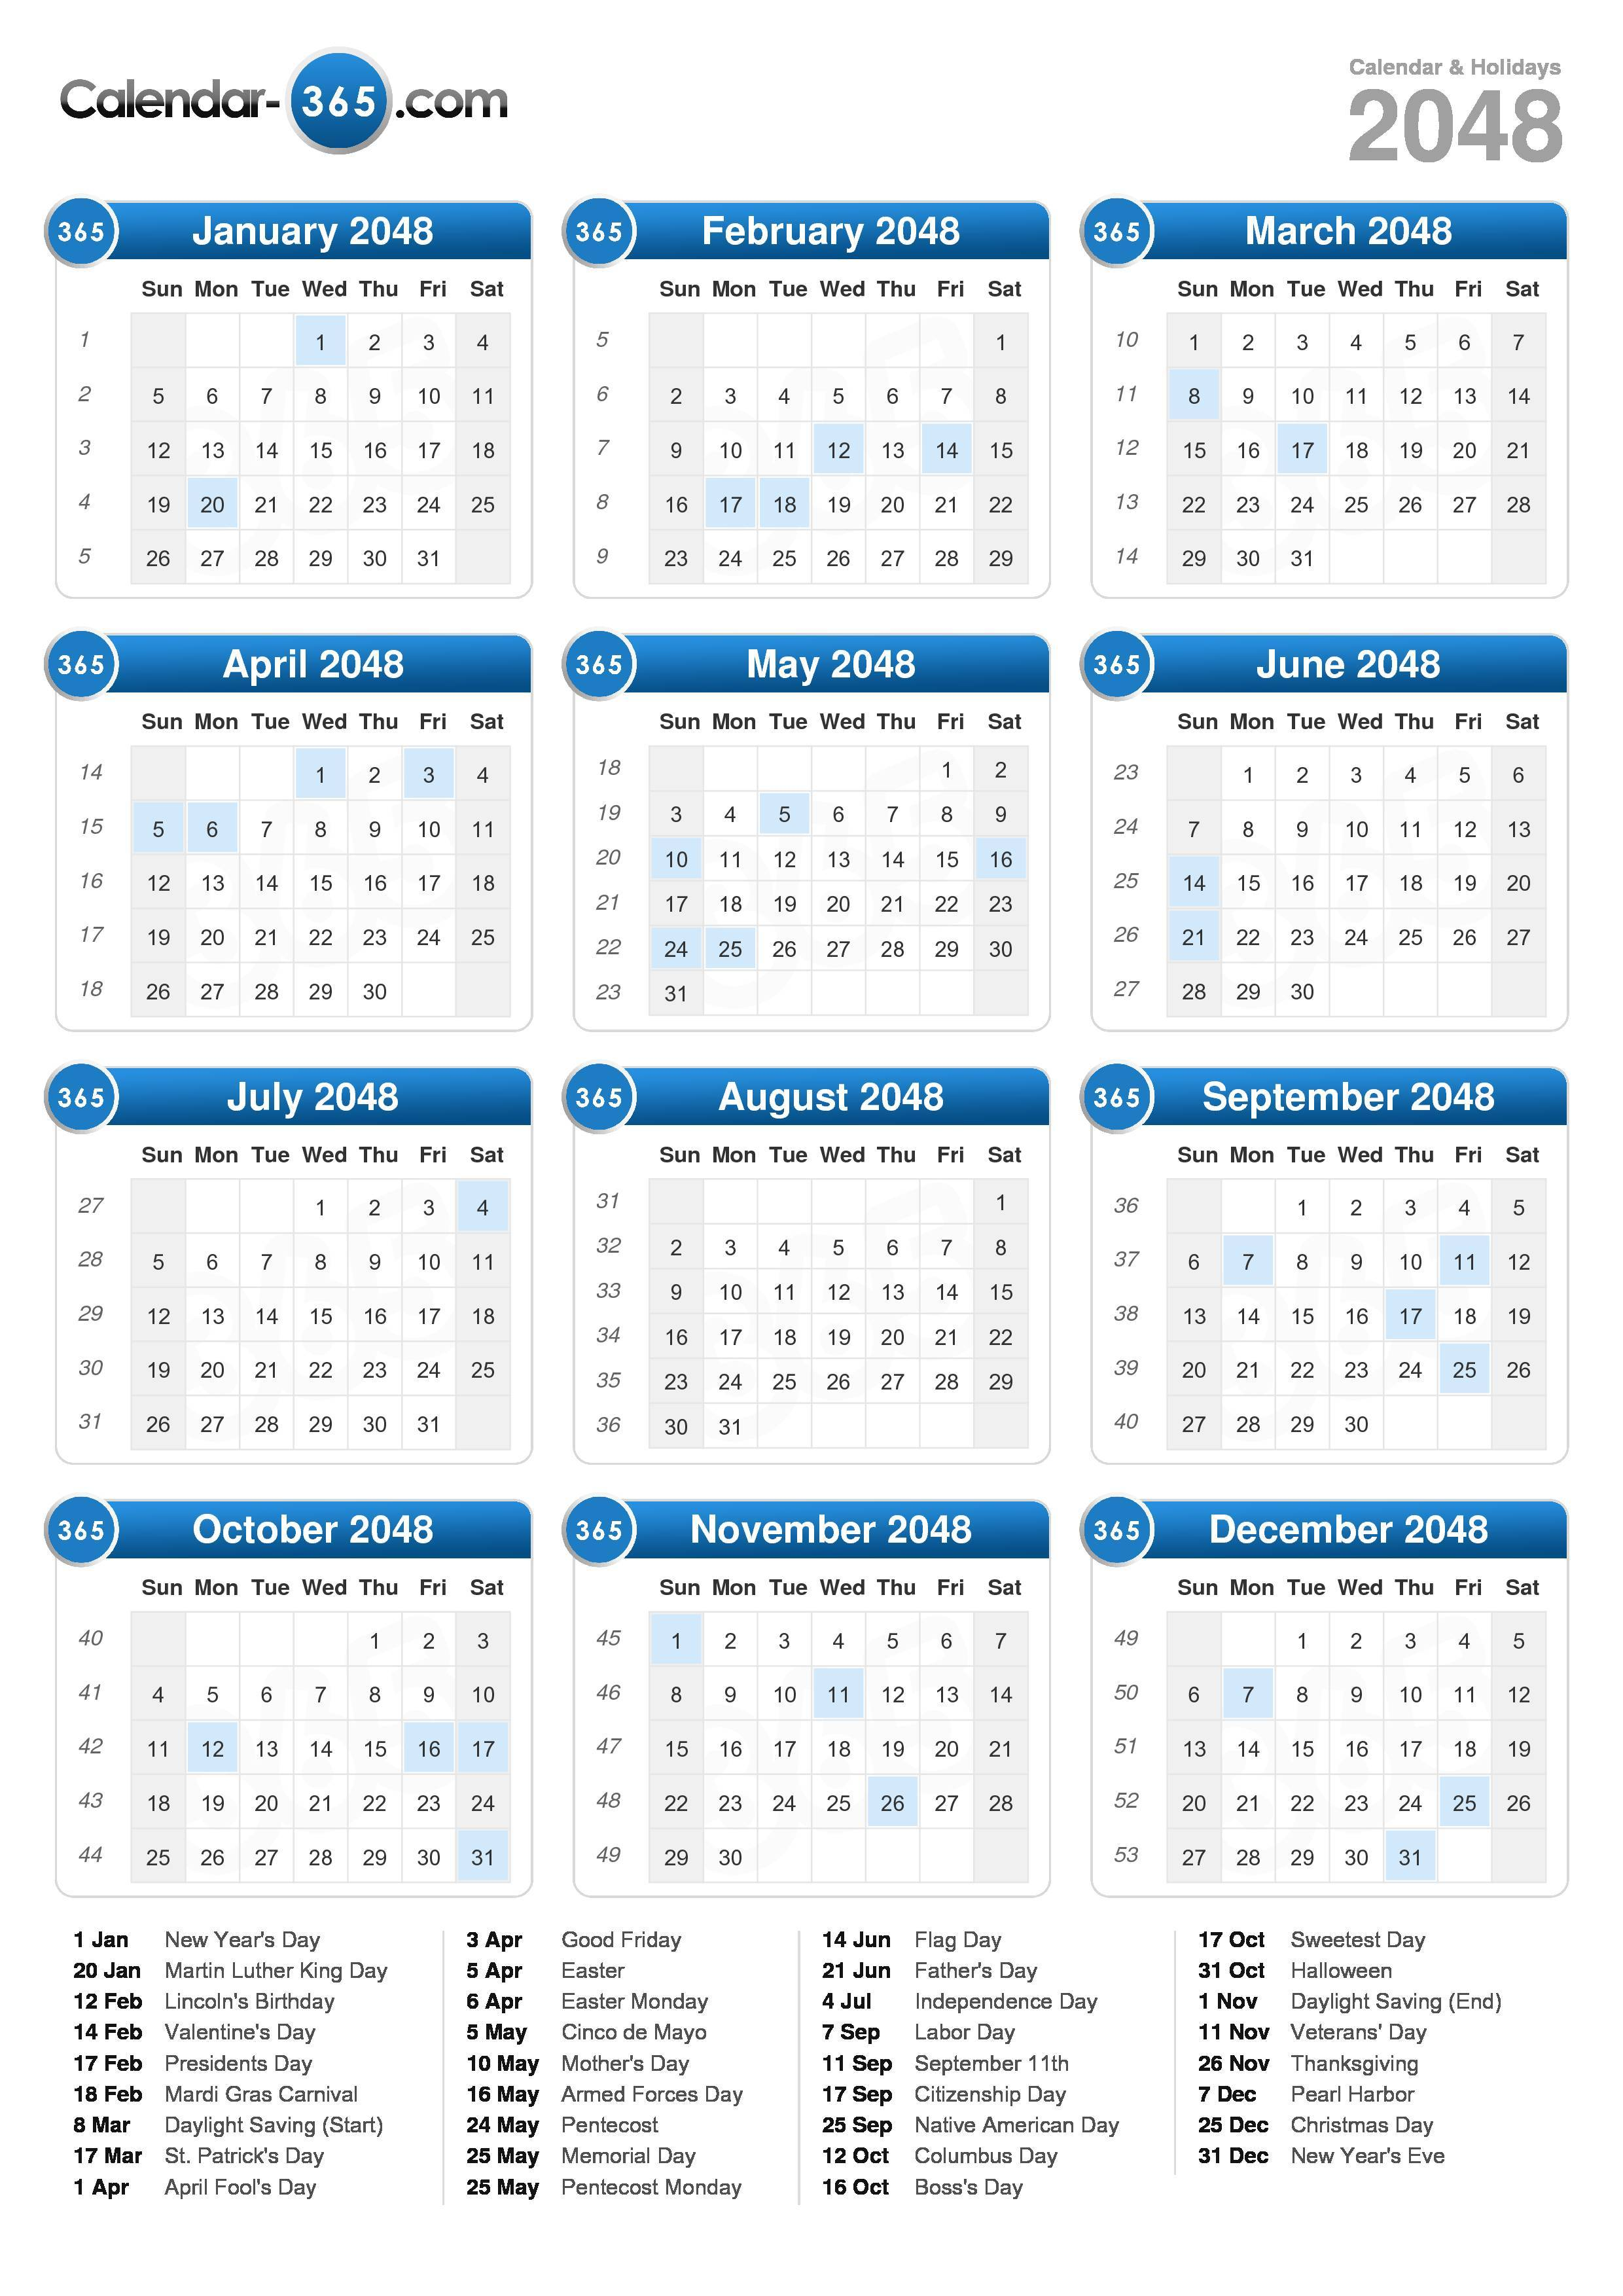 Download the 2048 Calendar with holidays . (Portrait format - 1 Page)